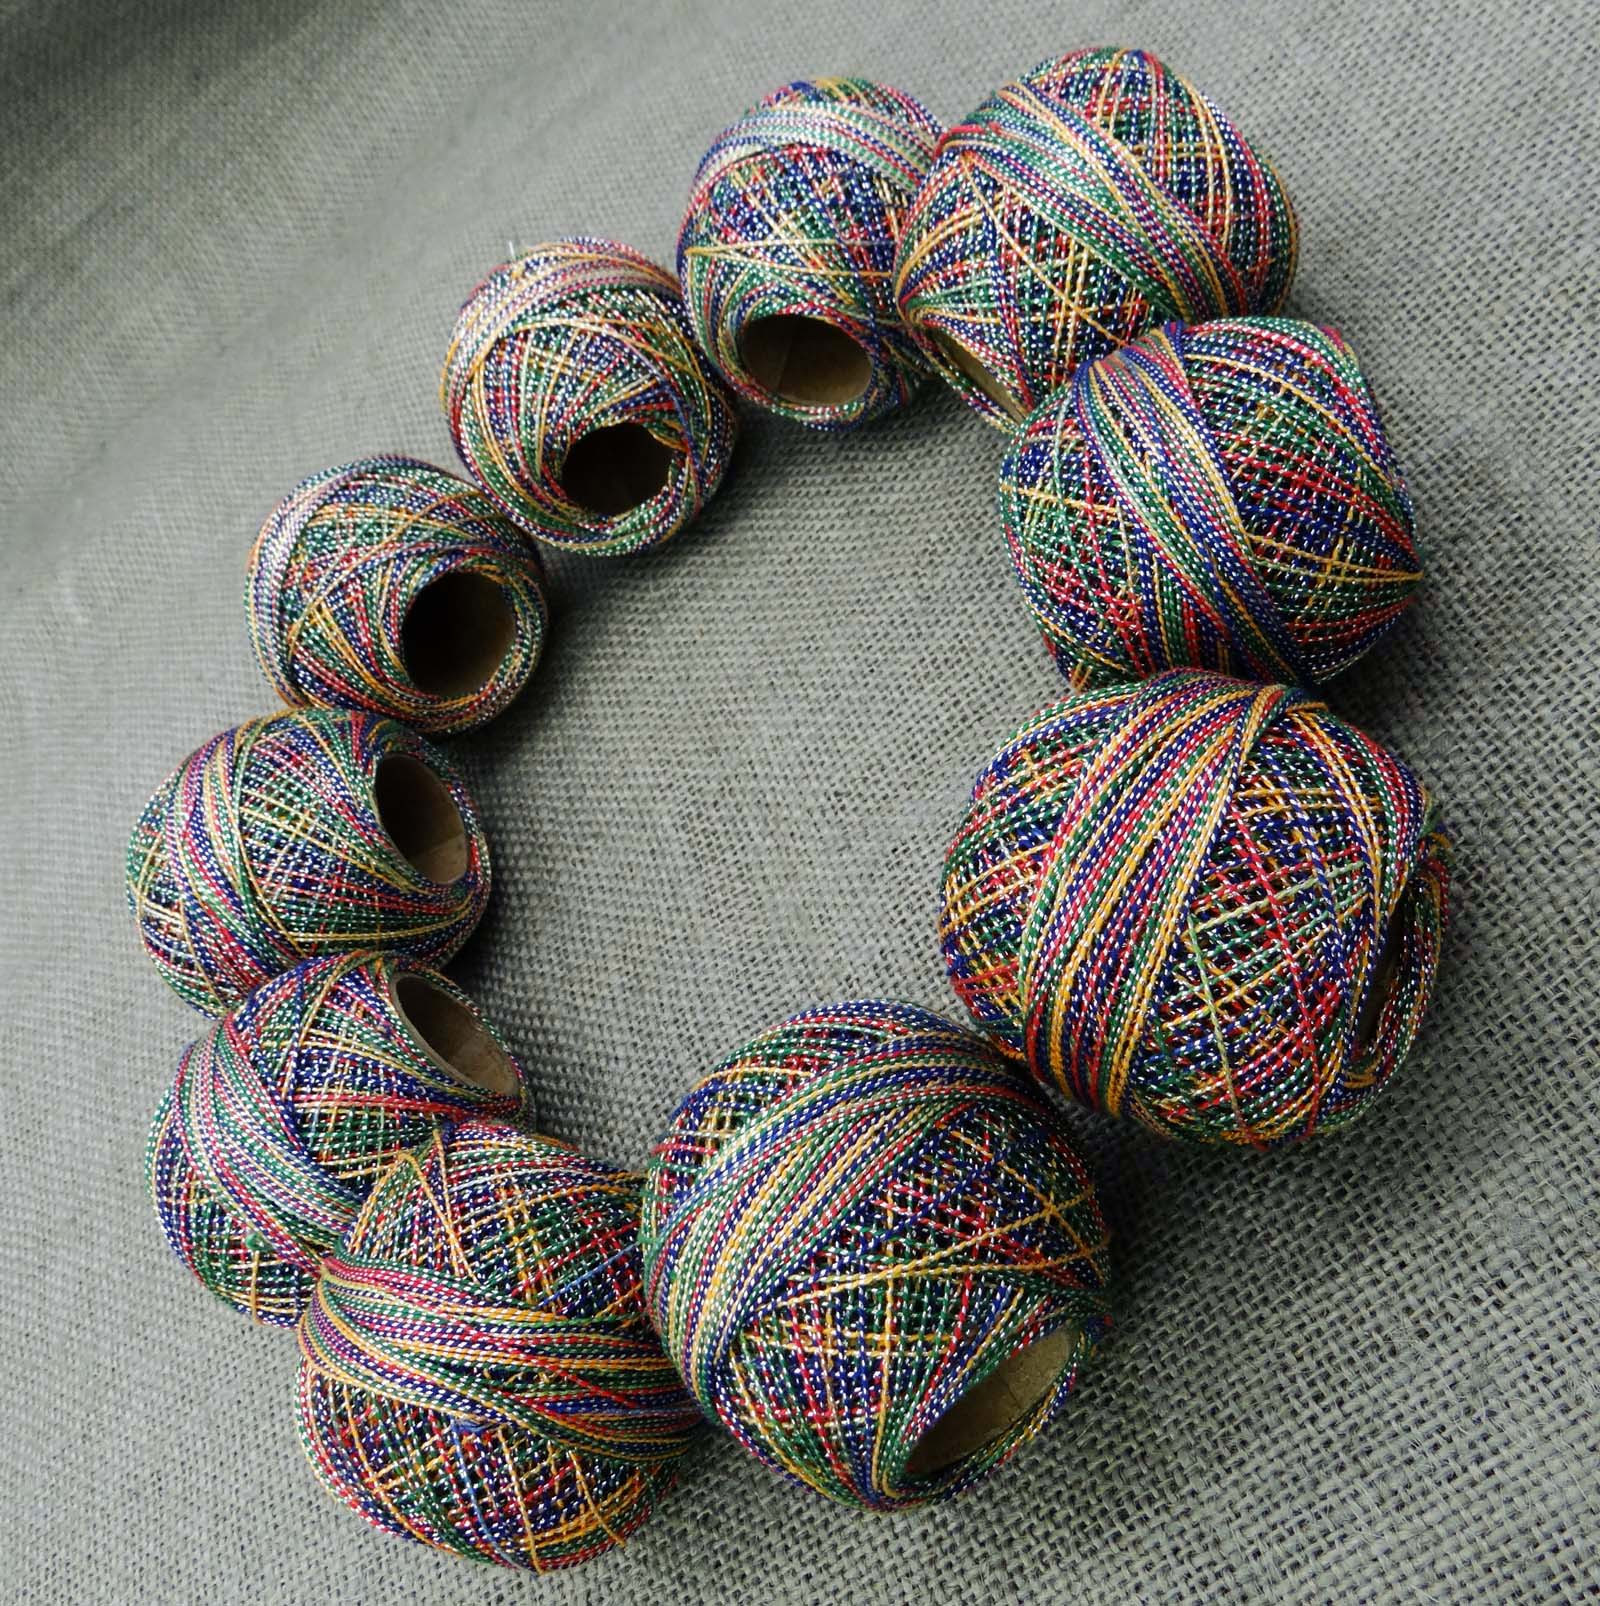 Embroidery Mercerized Yarn Cotton Metallic Crochet Thread